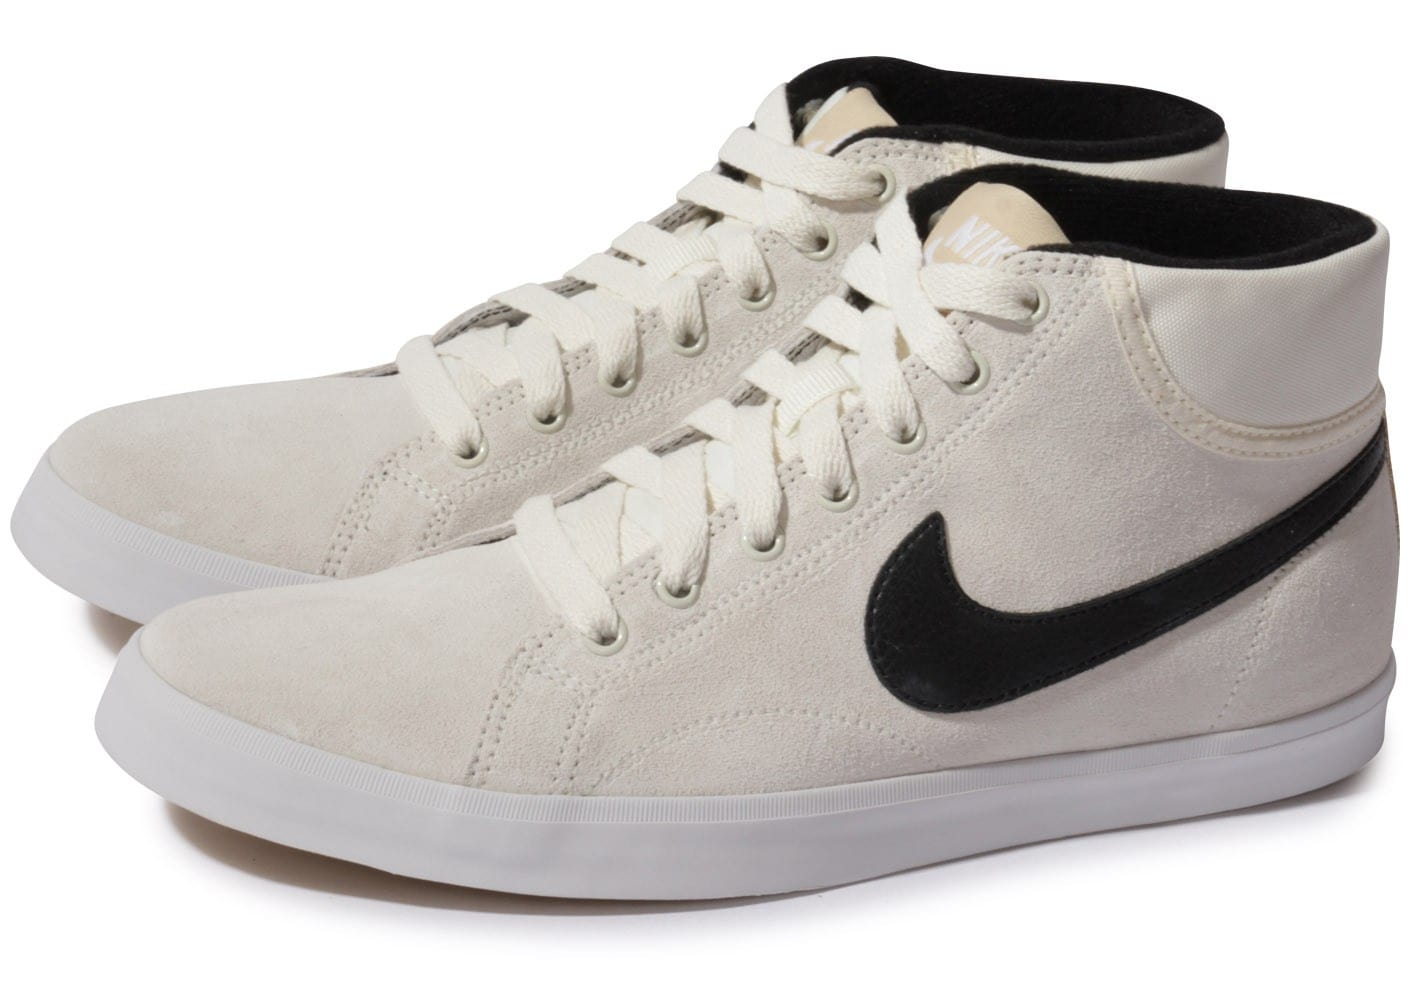 Nike Eastham Noire Et Chaussures Homme Mid Chausport Baskets Blanche PXiTOkZu